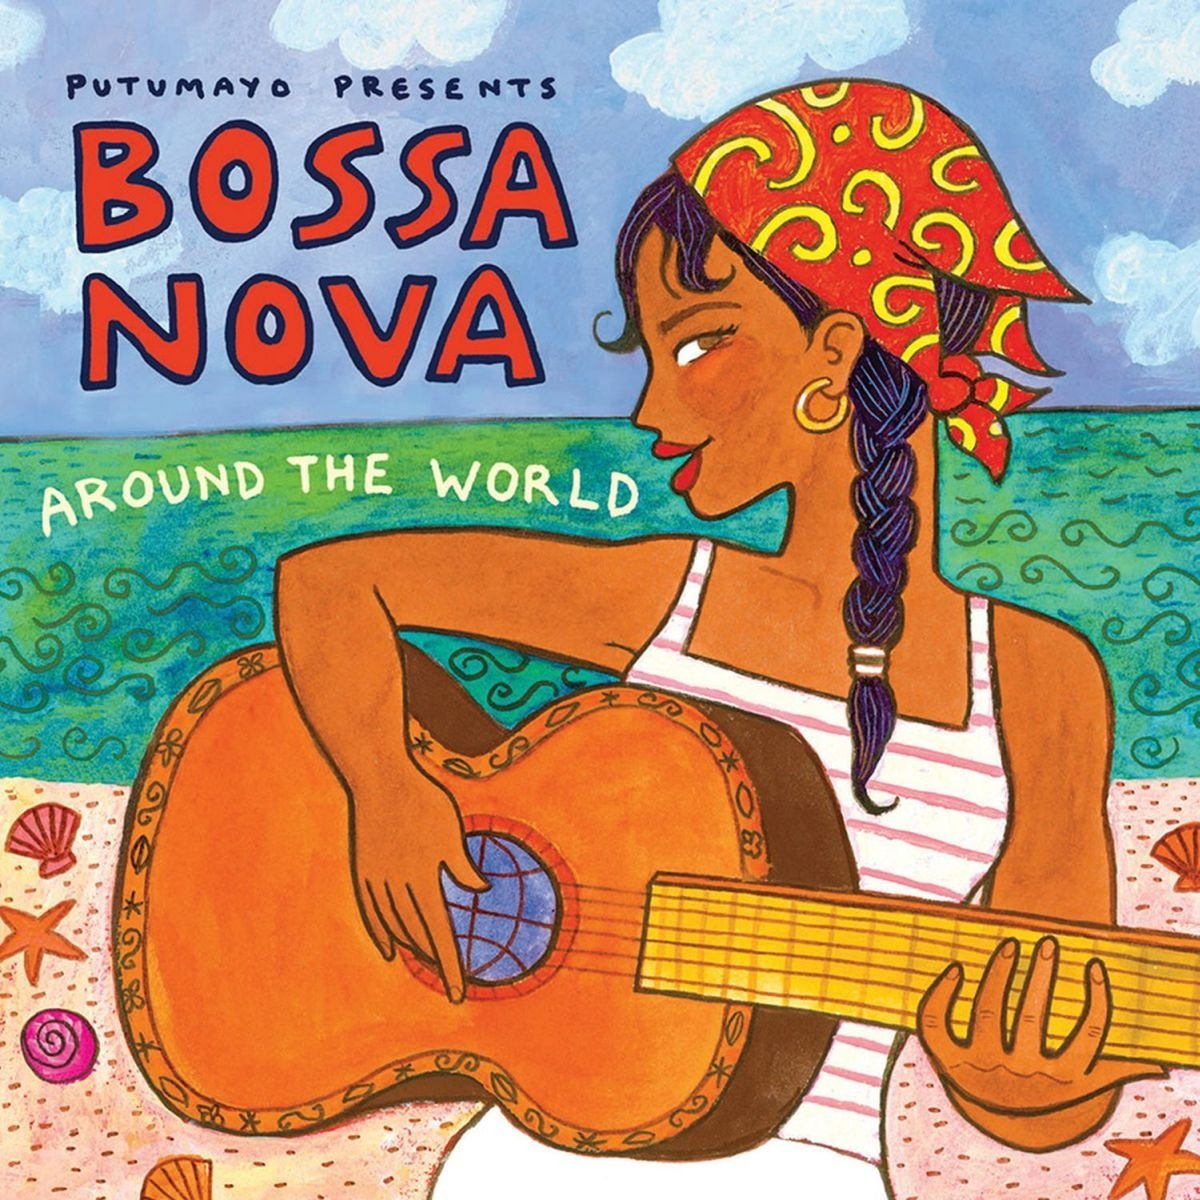 Bossa Nova Around The World by Putumayo